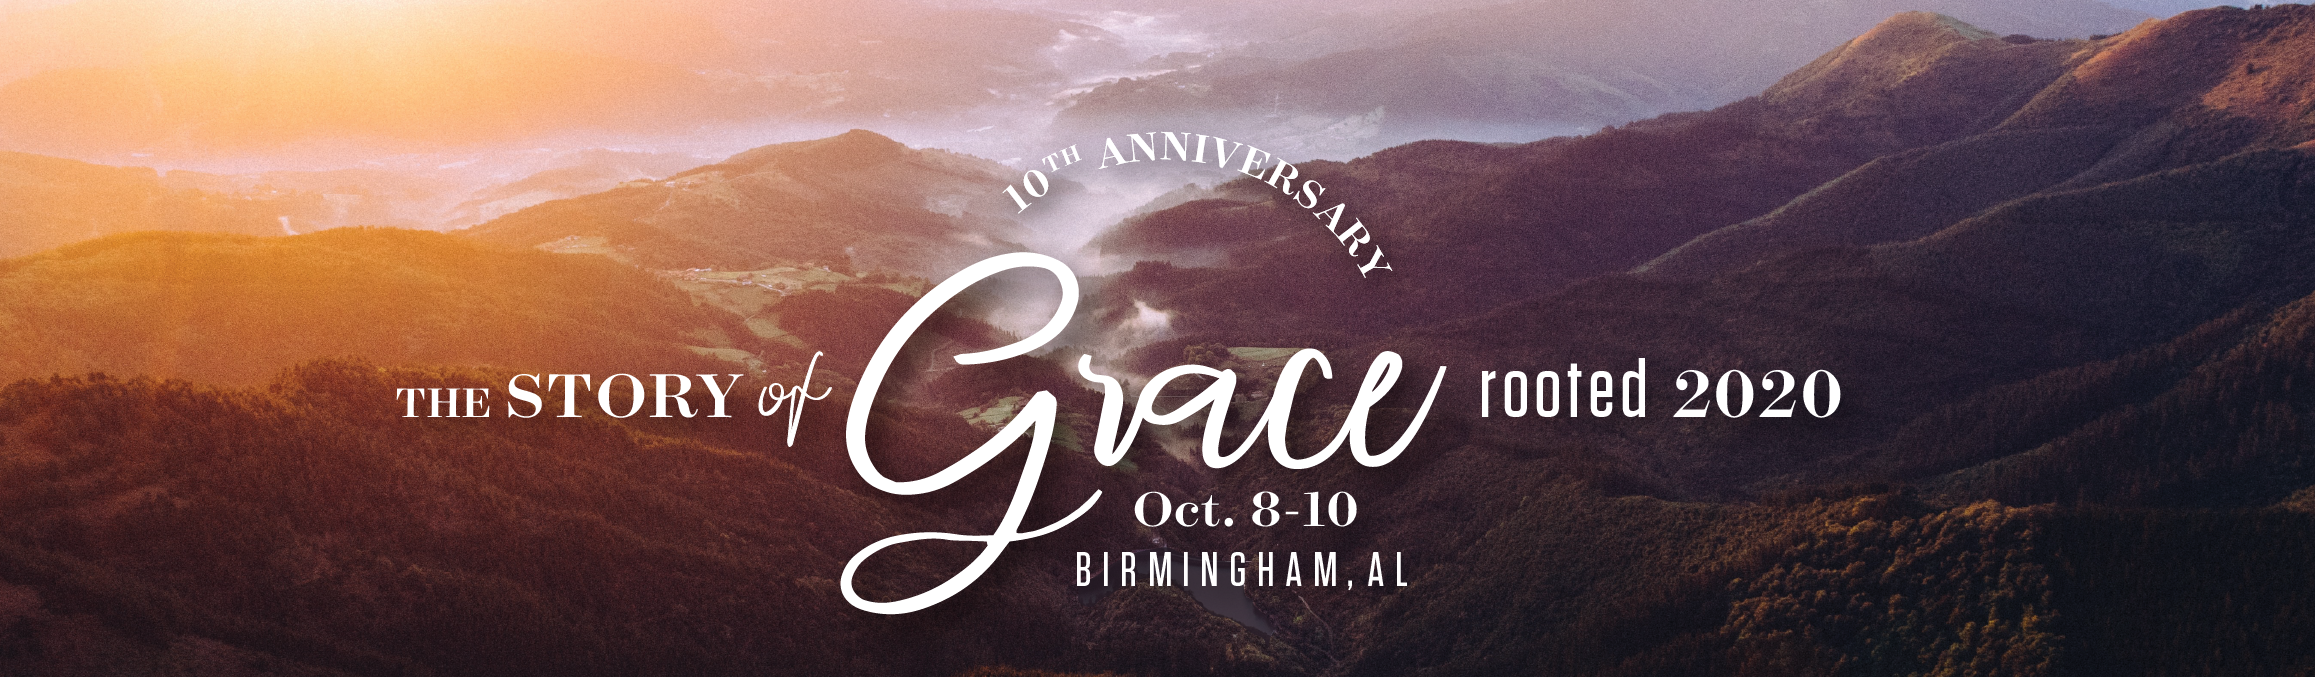 Registration for Rooted's 10th Anniversary Conference Now Open!